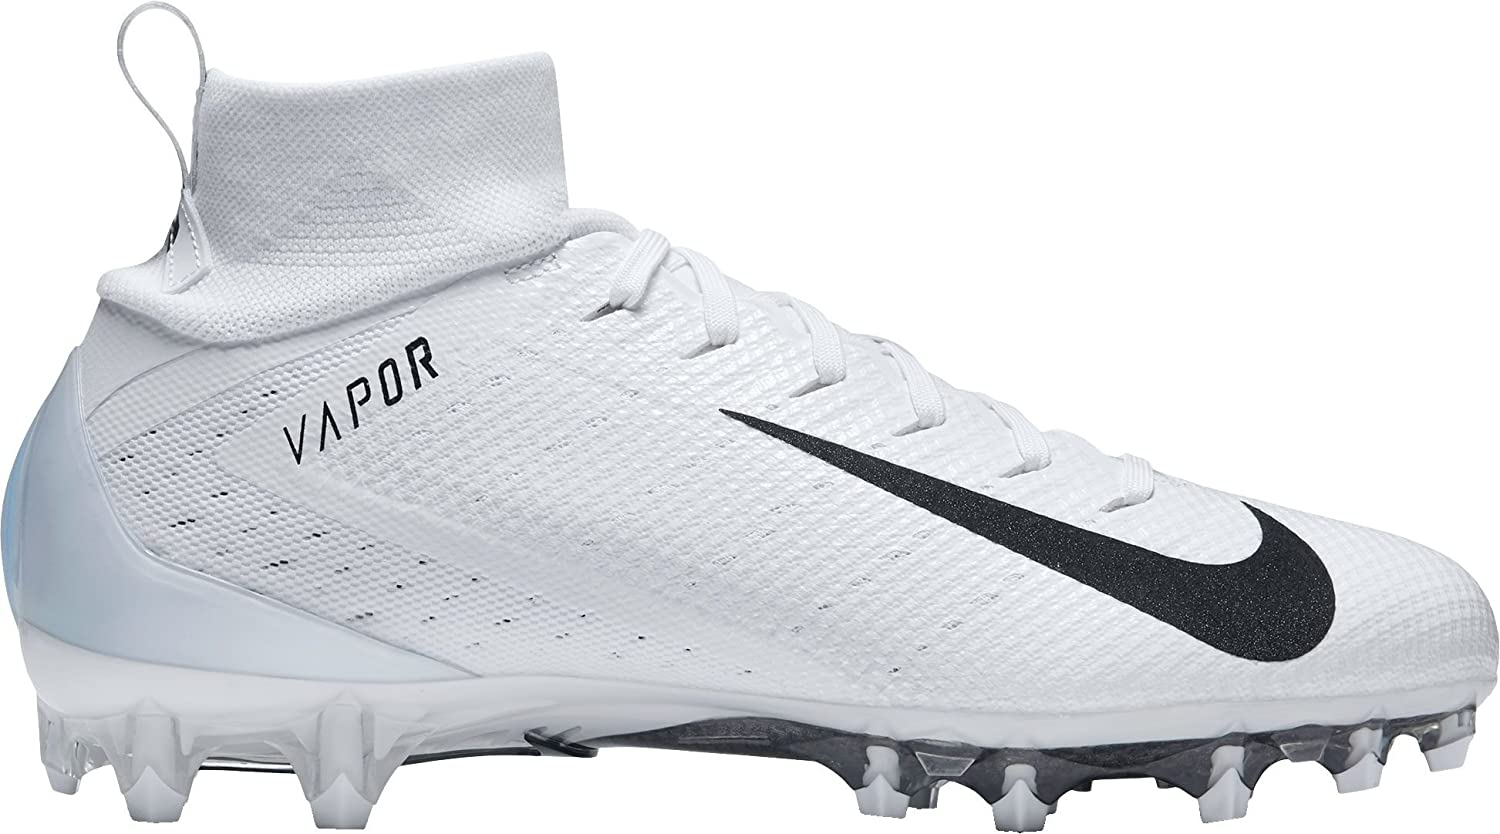 hot sale online fd617 8d5ae NIKE Vapor Untouchable Pro 3 Mens Football Cleats B07CMC8C1C 9.5 D(M) US  White Black c36dbb - melissaclausse.com